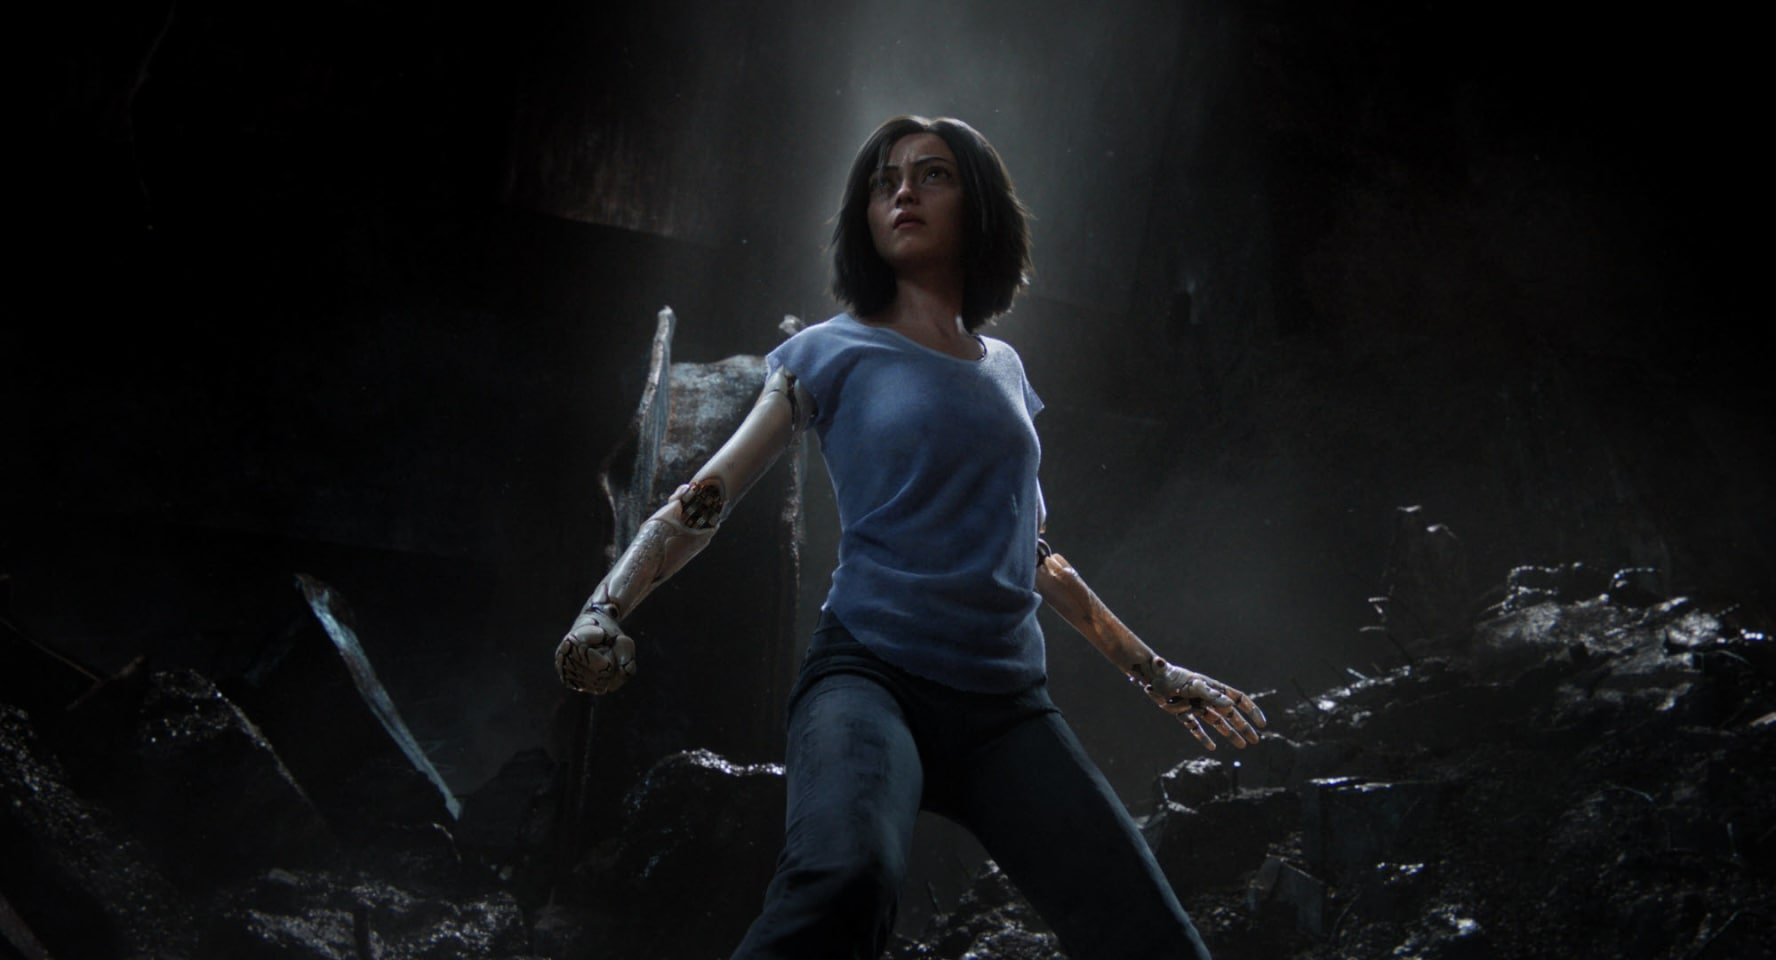 Rosa Salazar as Alita in 'Alita: Battle Angel'